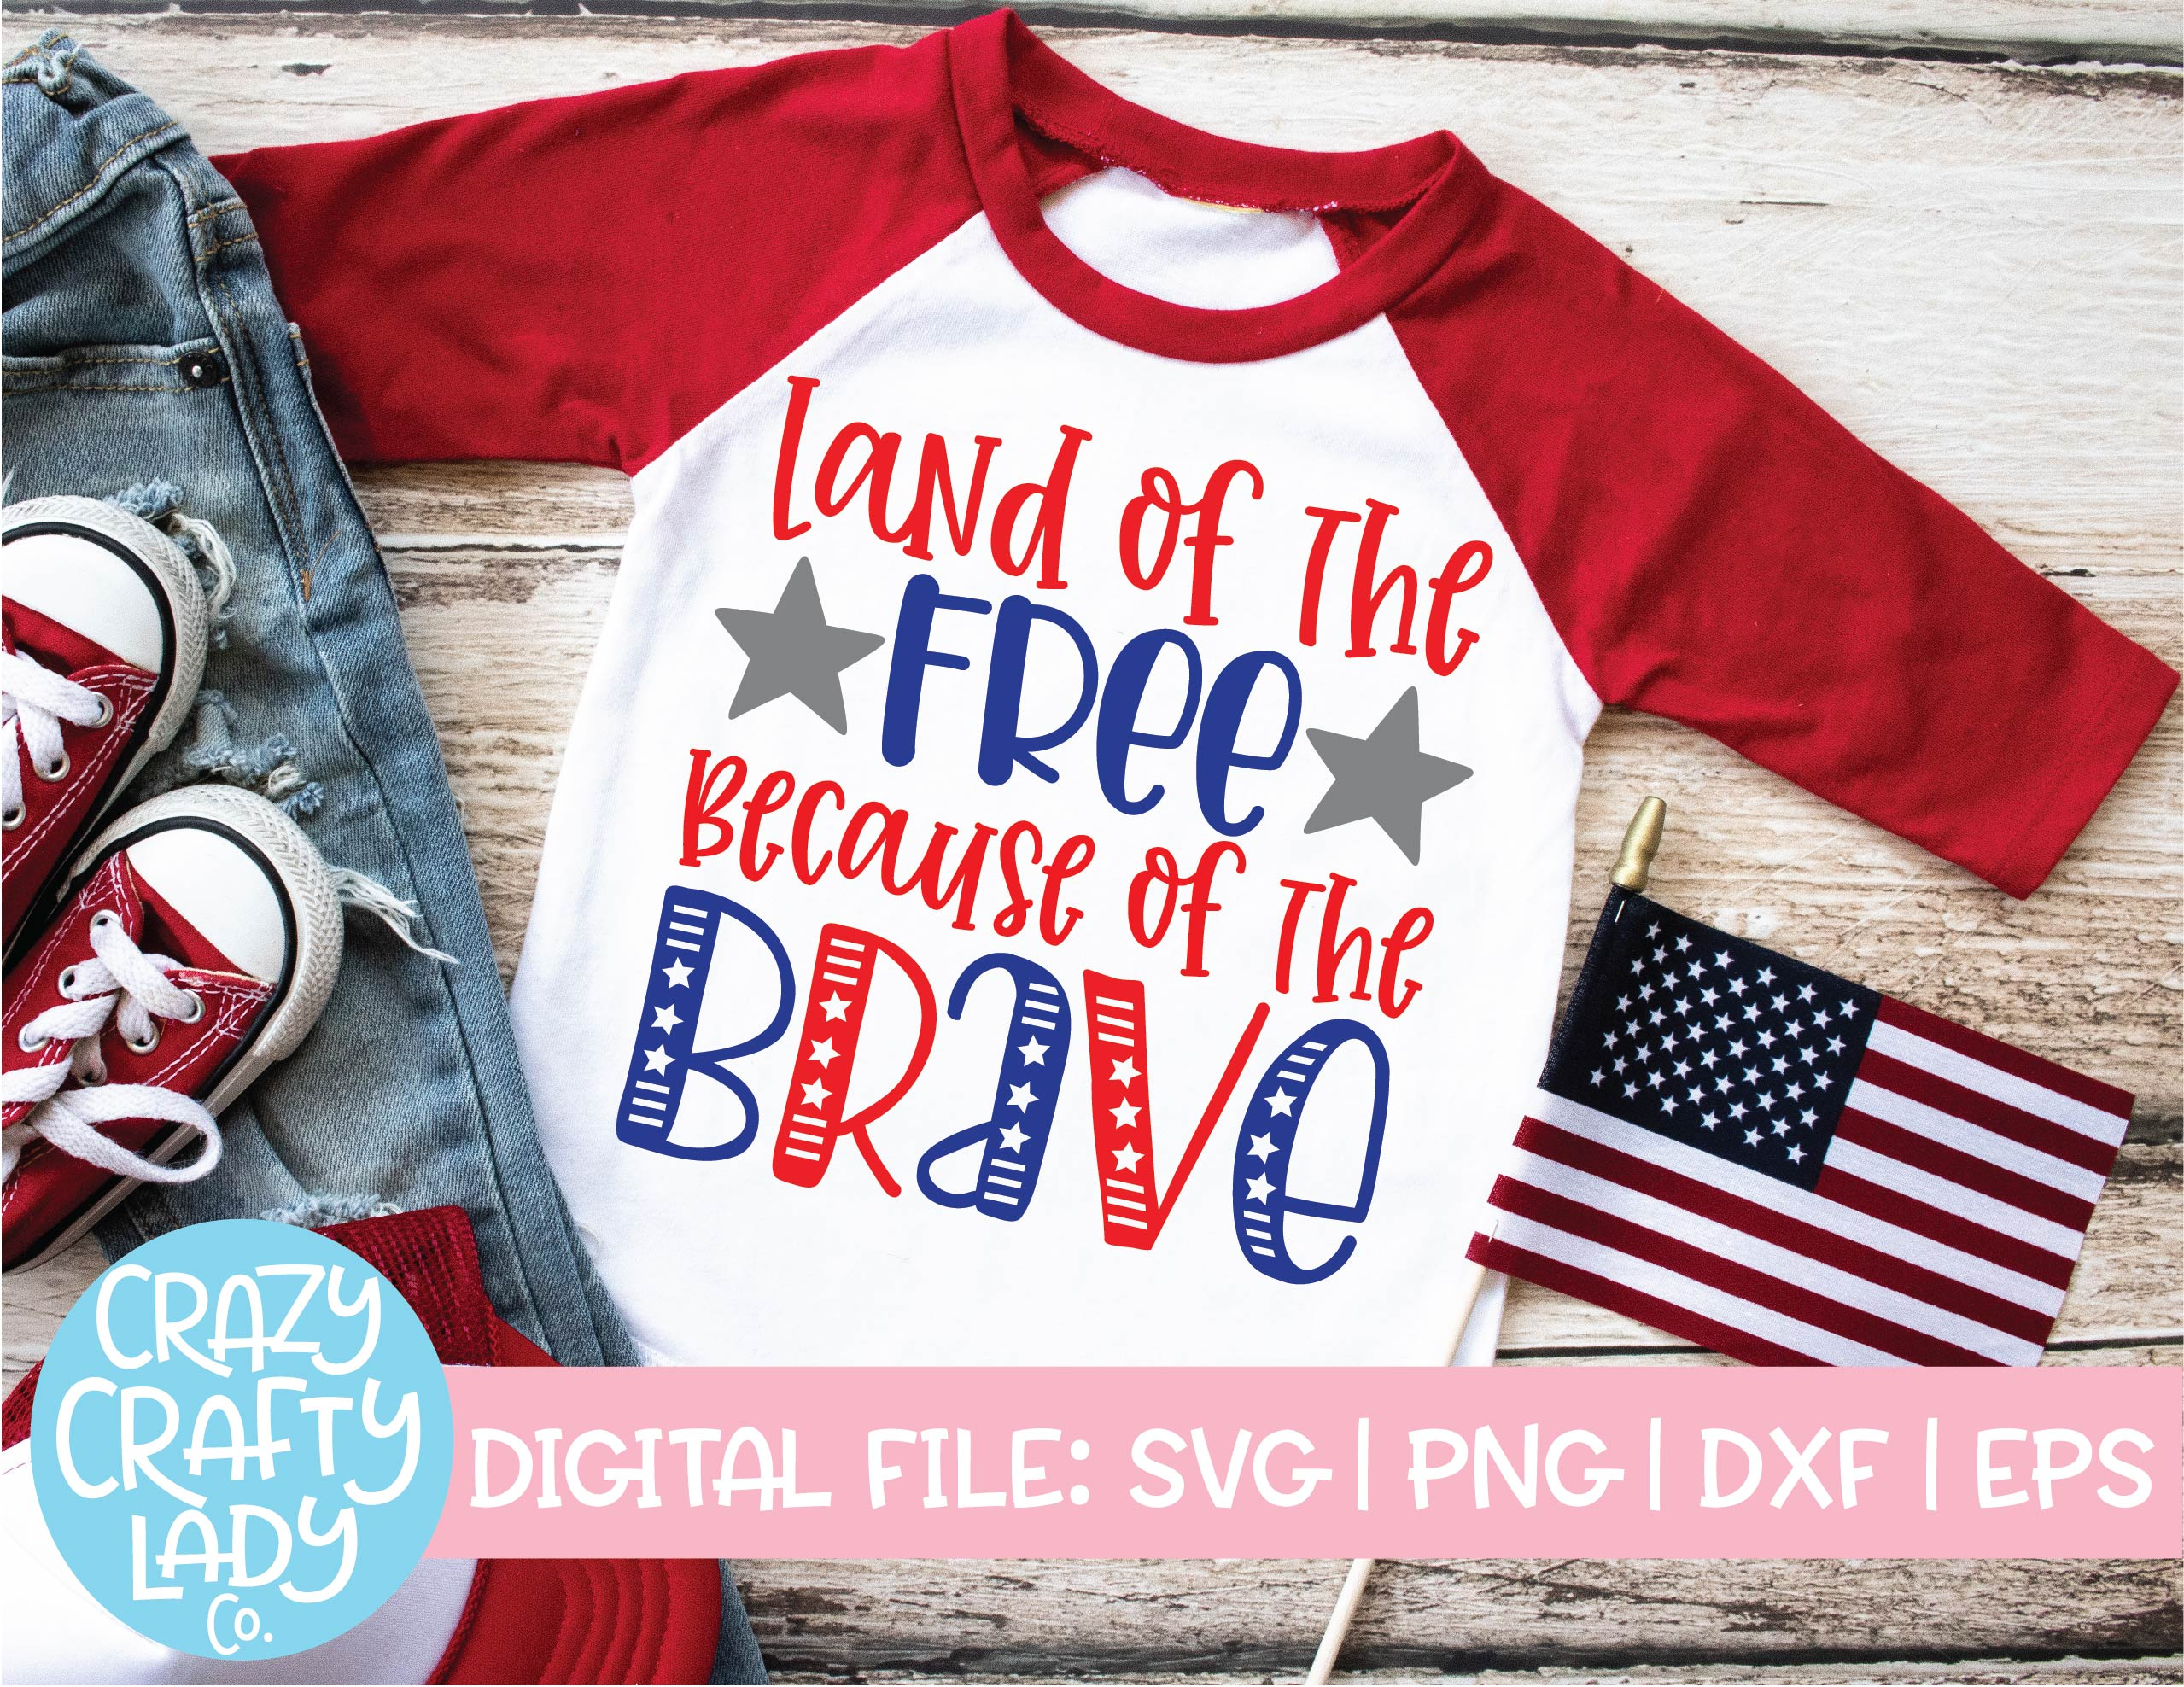 Land Of The Free Because Of The Brave Svg Cut File Crazy Crafty Lady Co